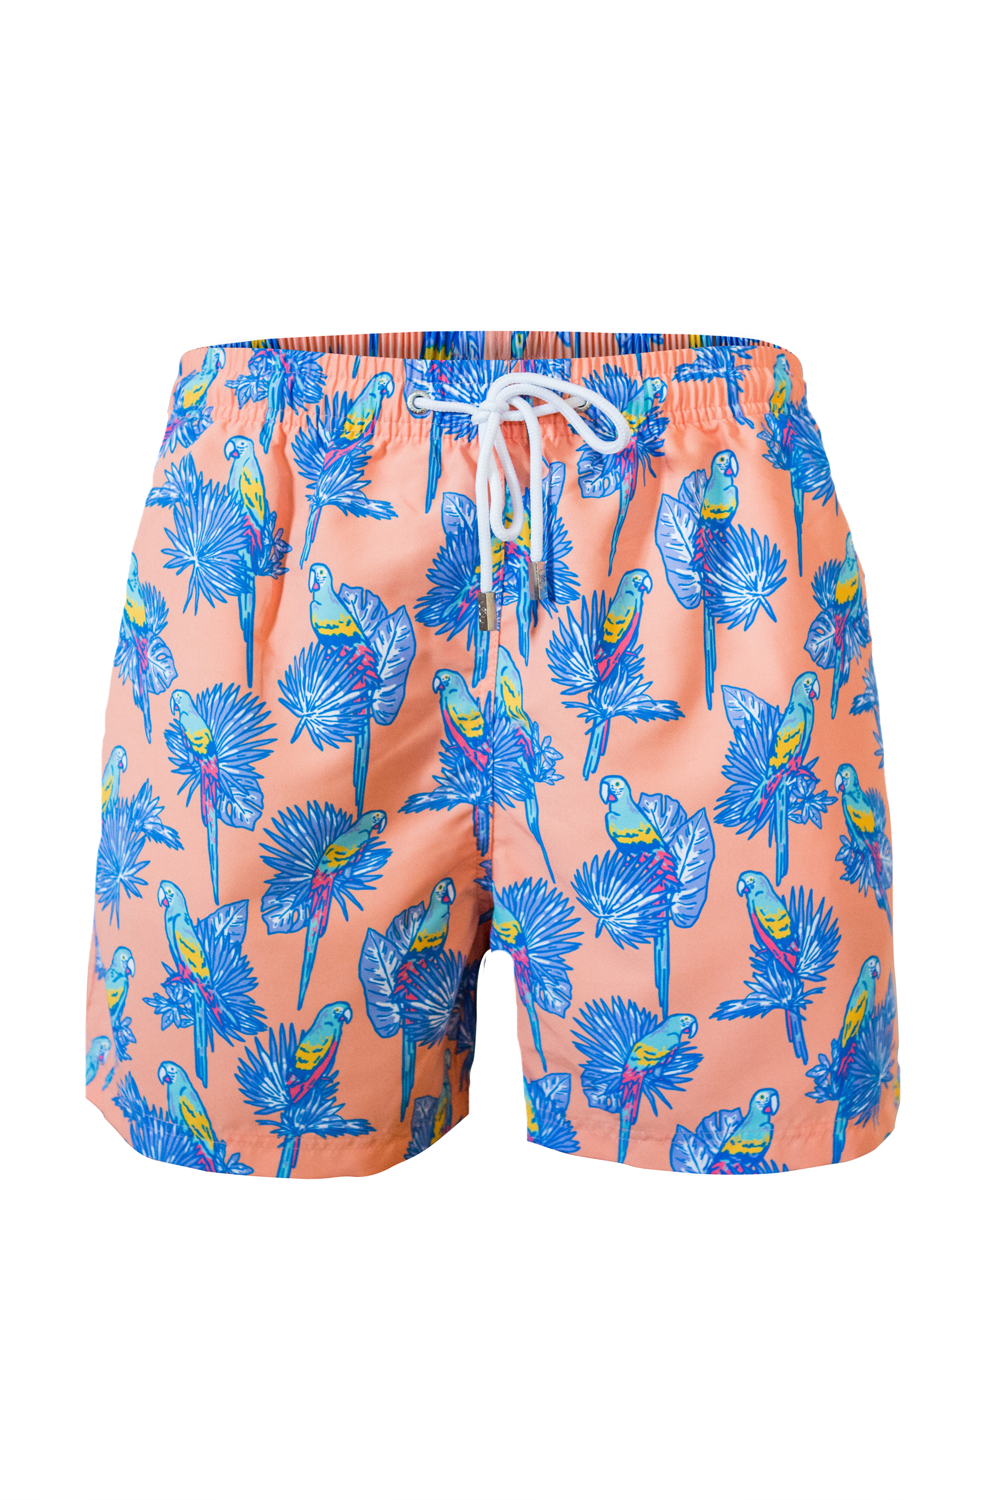 The Pedro Parrot Orange Swim Short